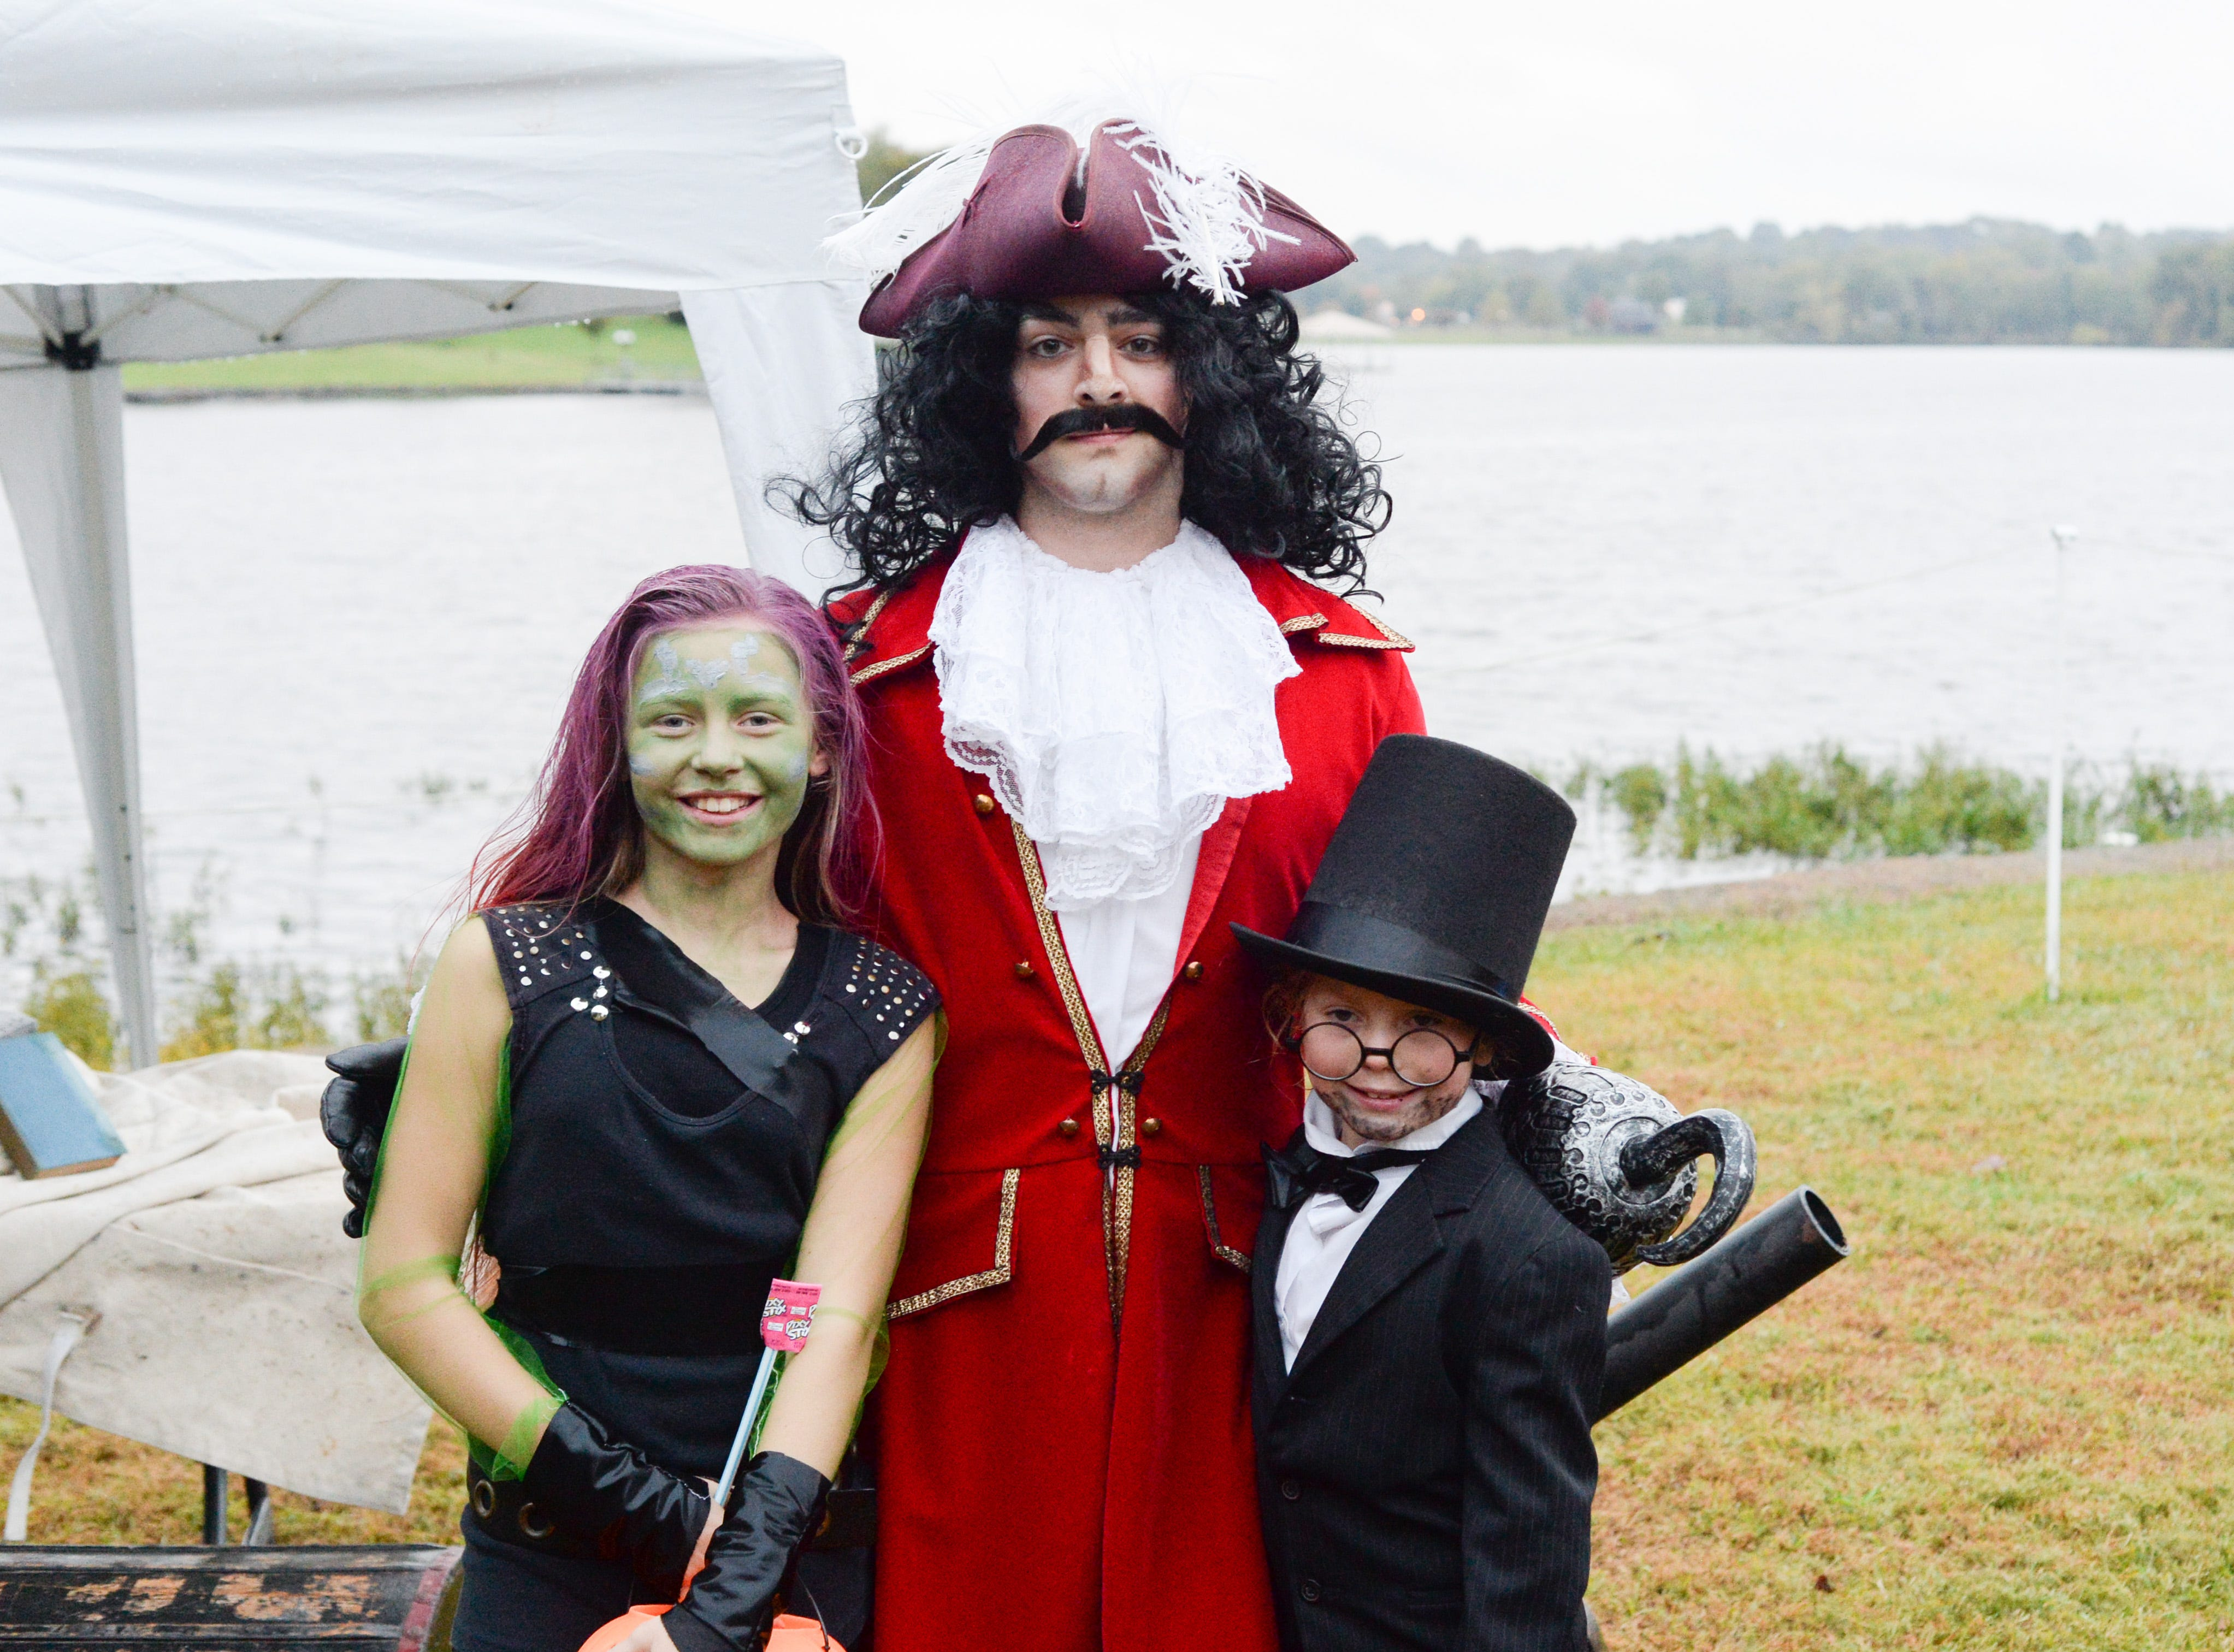 Attendees get to interact with the characters during the Castle of Villains trick or treating event at Historic Rock Castle in Hendersonville on Friday, Oct. 26.